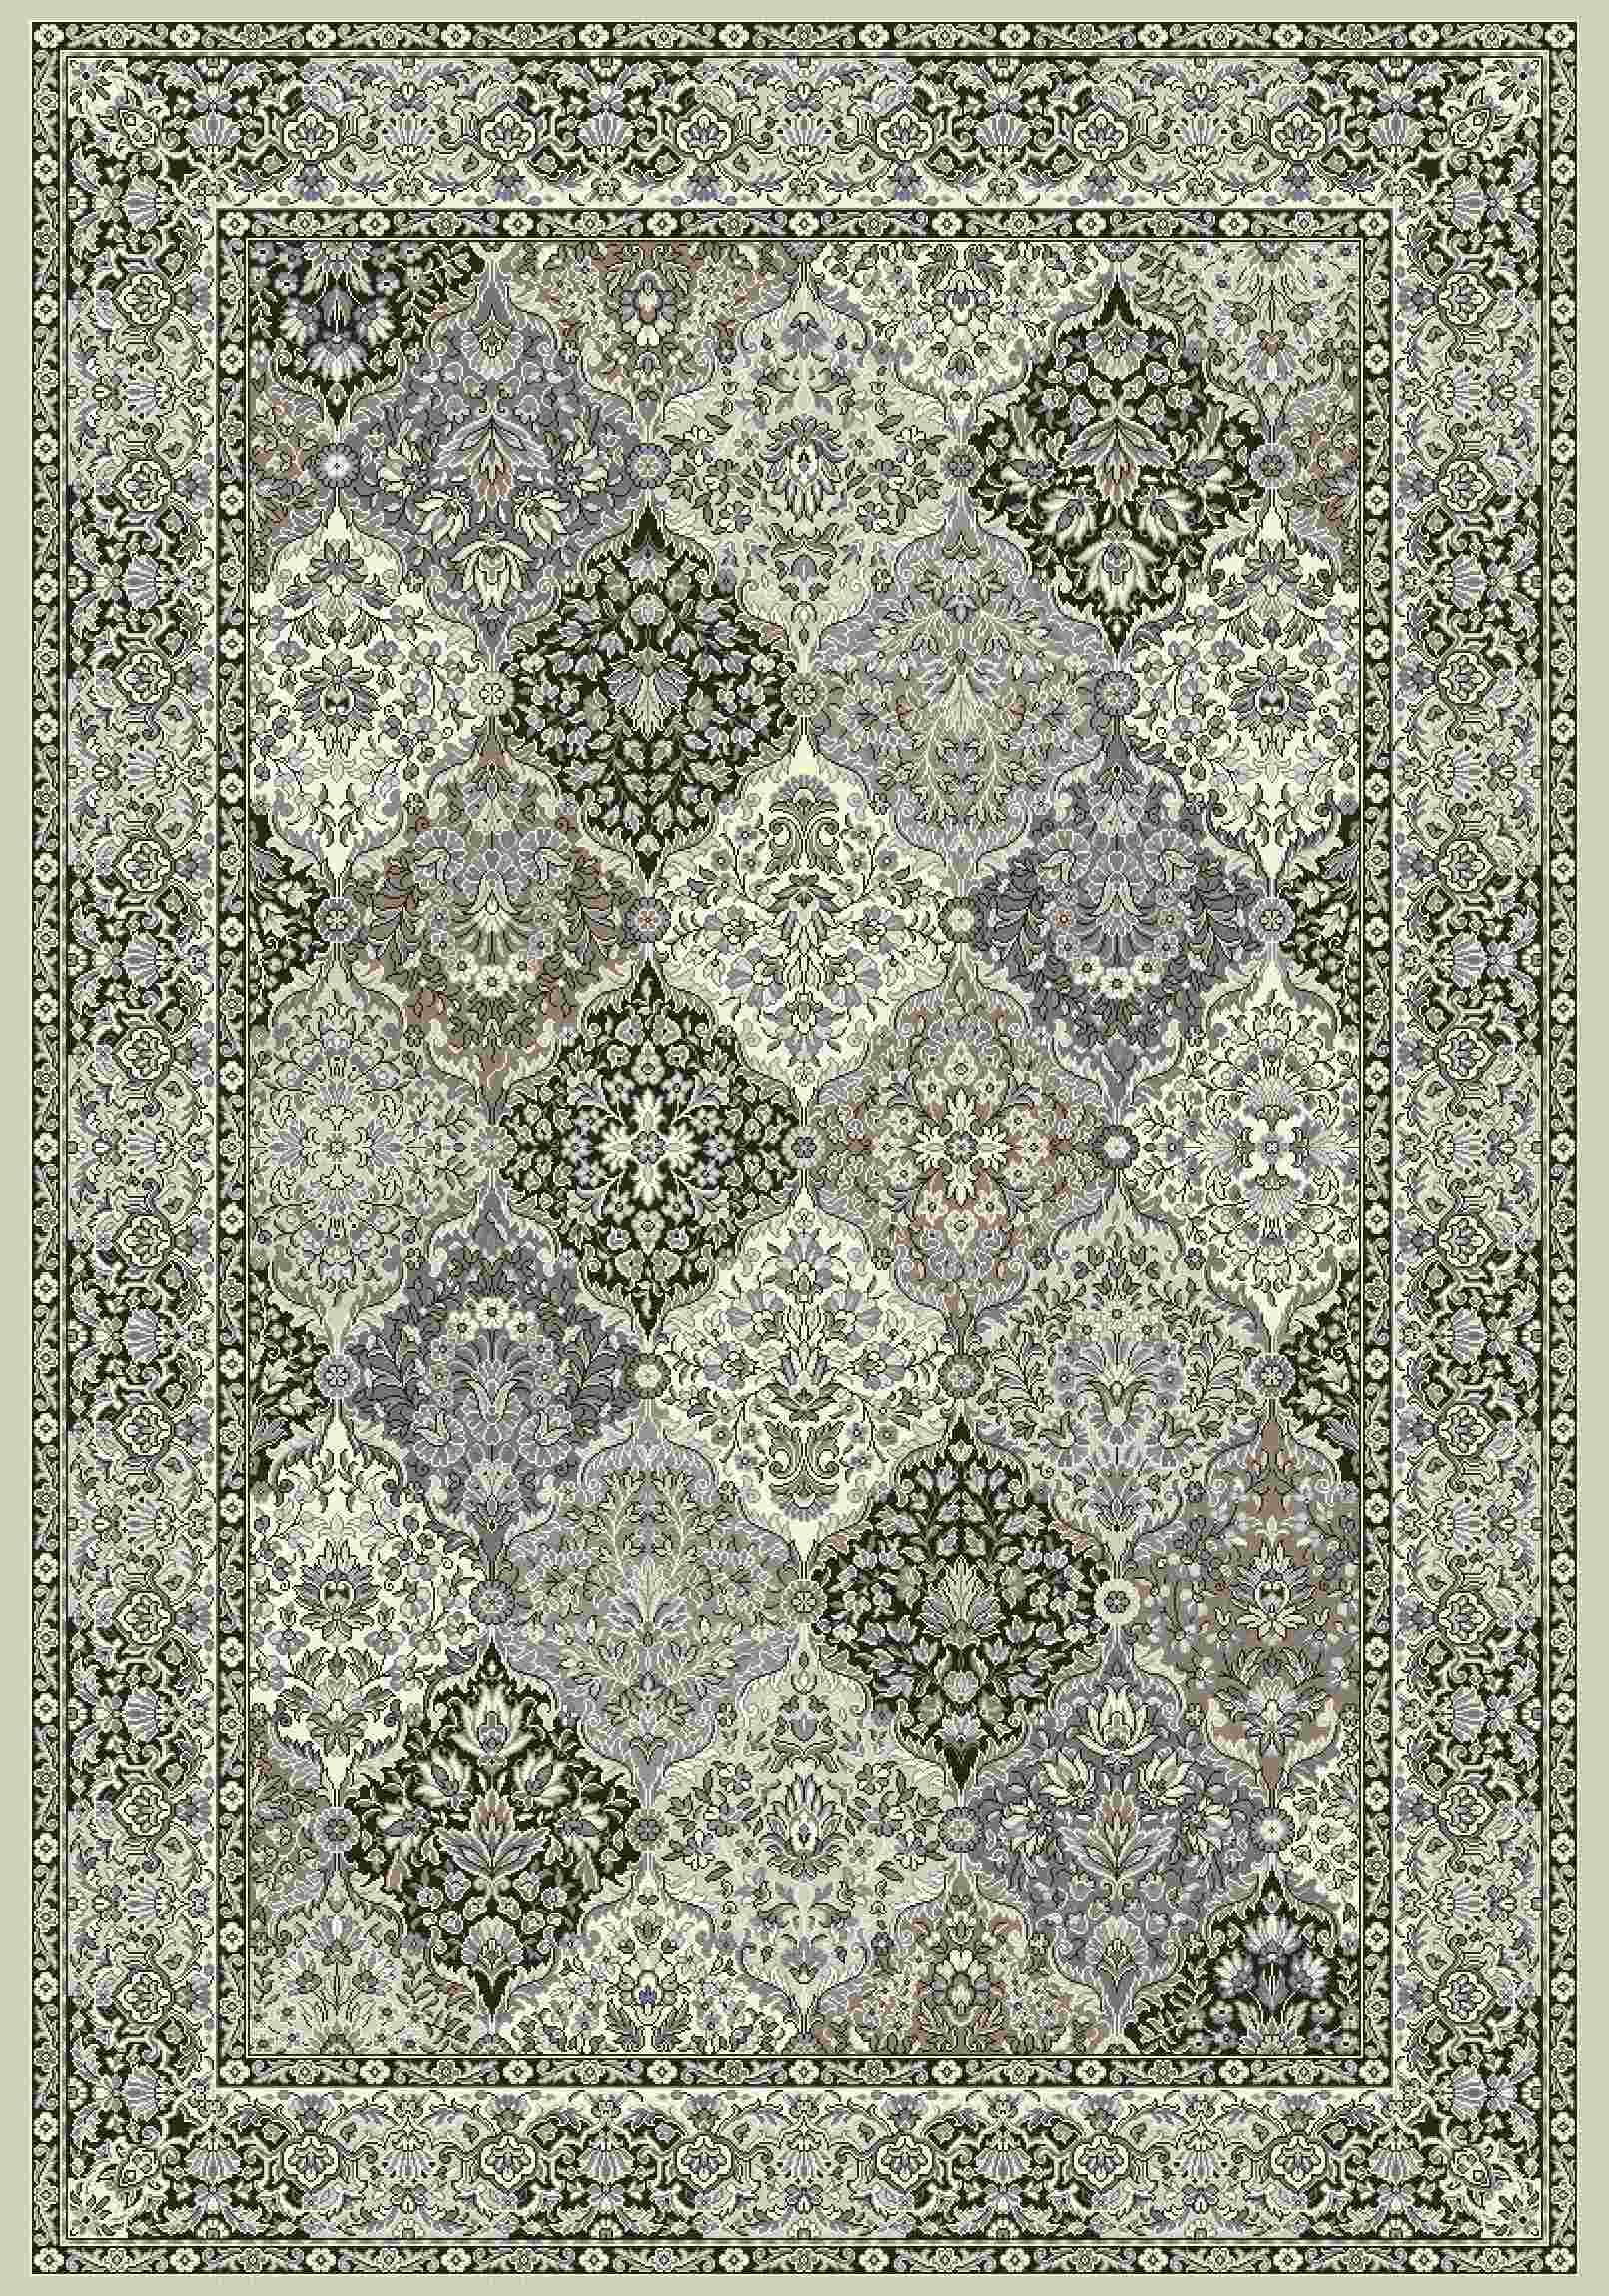 Dynamic Rugs Ancient Garden Classic Cream/grey 57008 Area Rug